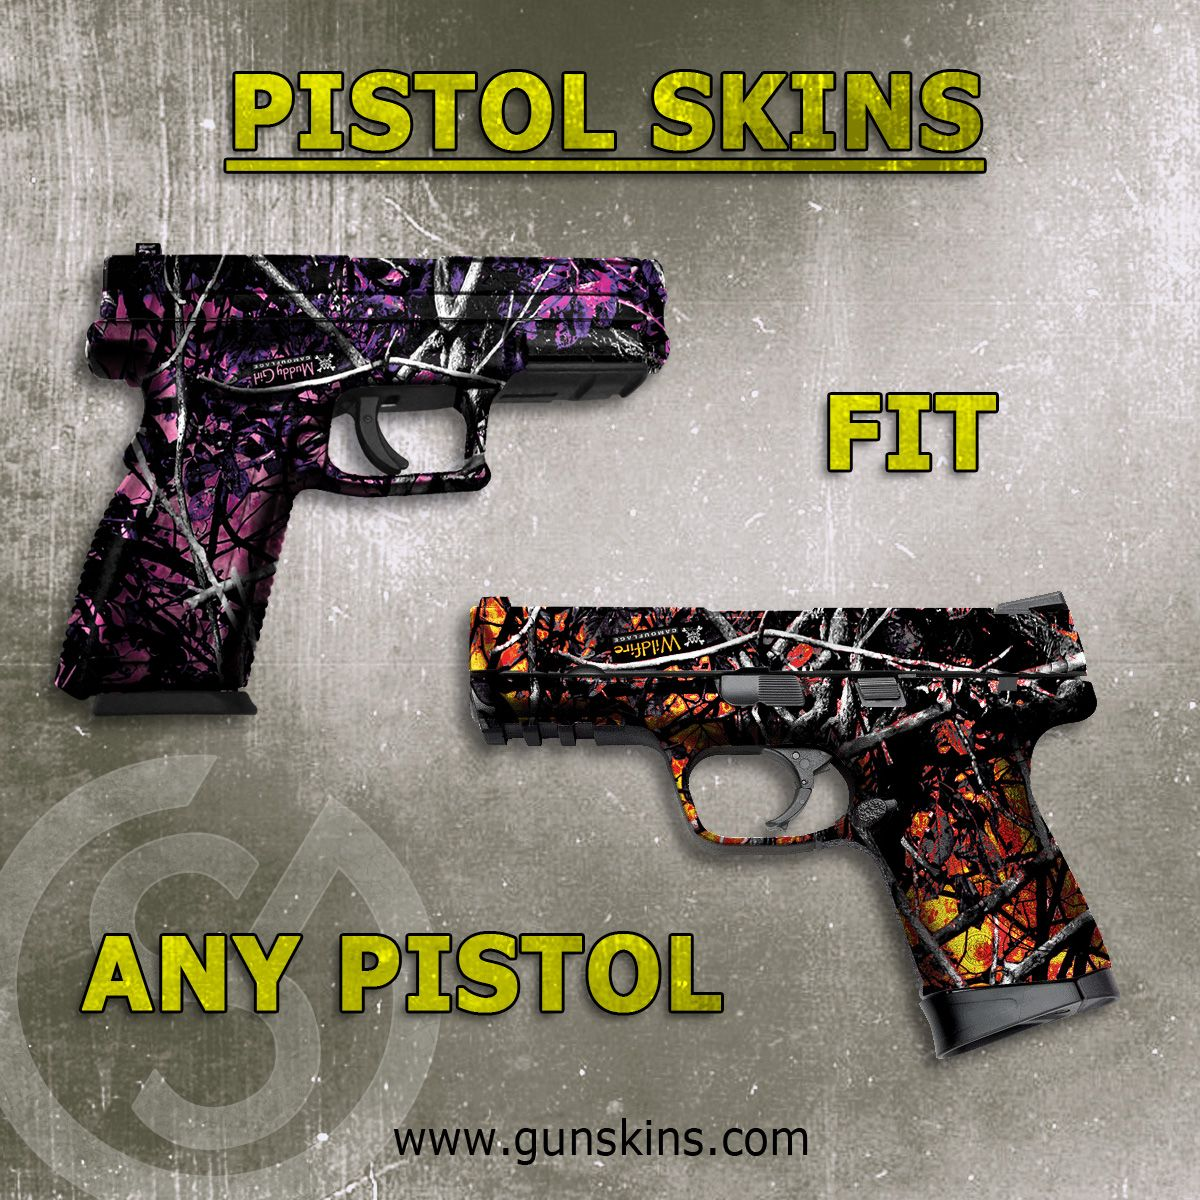 Pistol skin guns revolvers and airsoft pistol skins are a generic diy kit that can be applied to any pistol under solutioingenieria Gallery